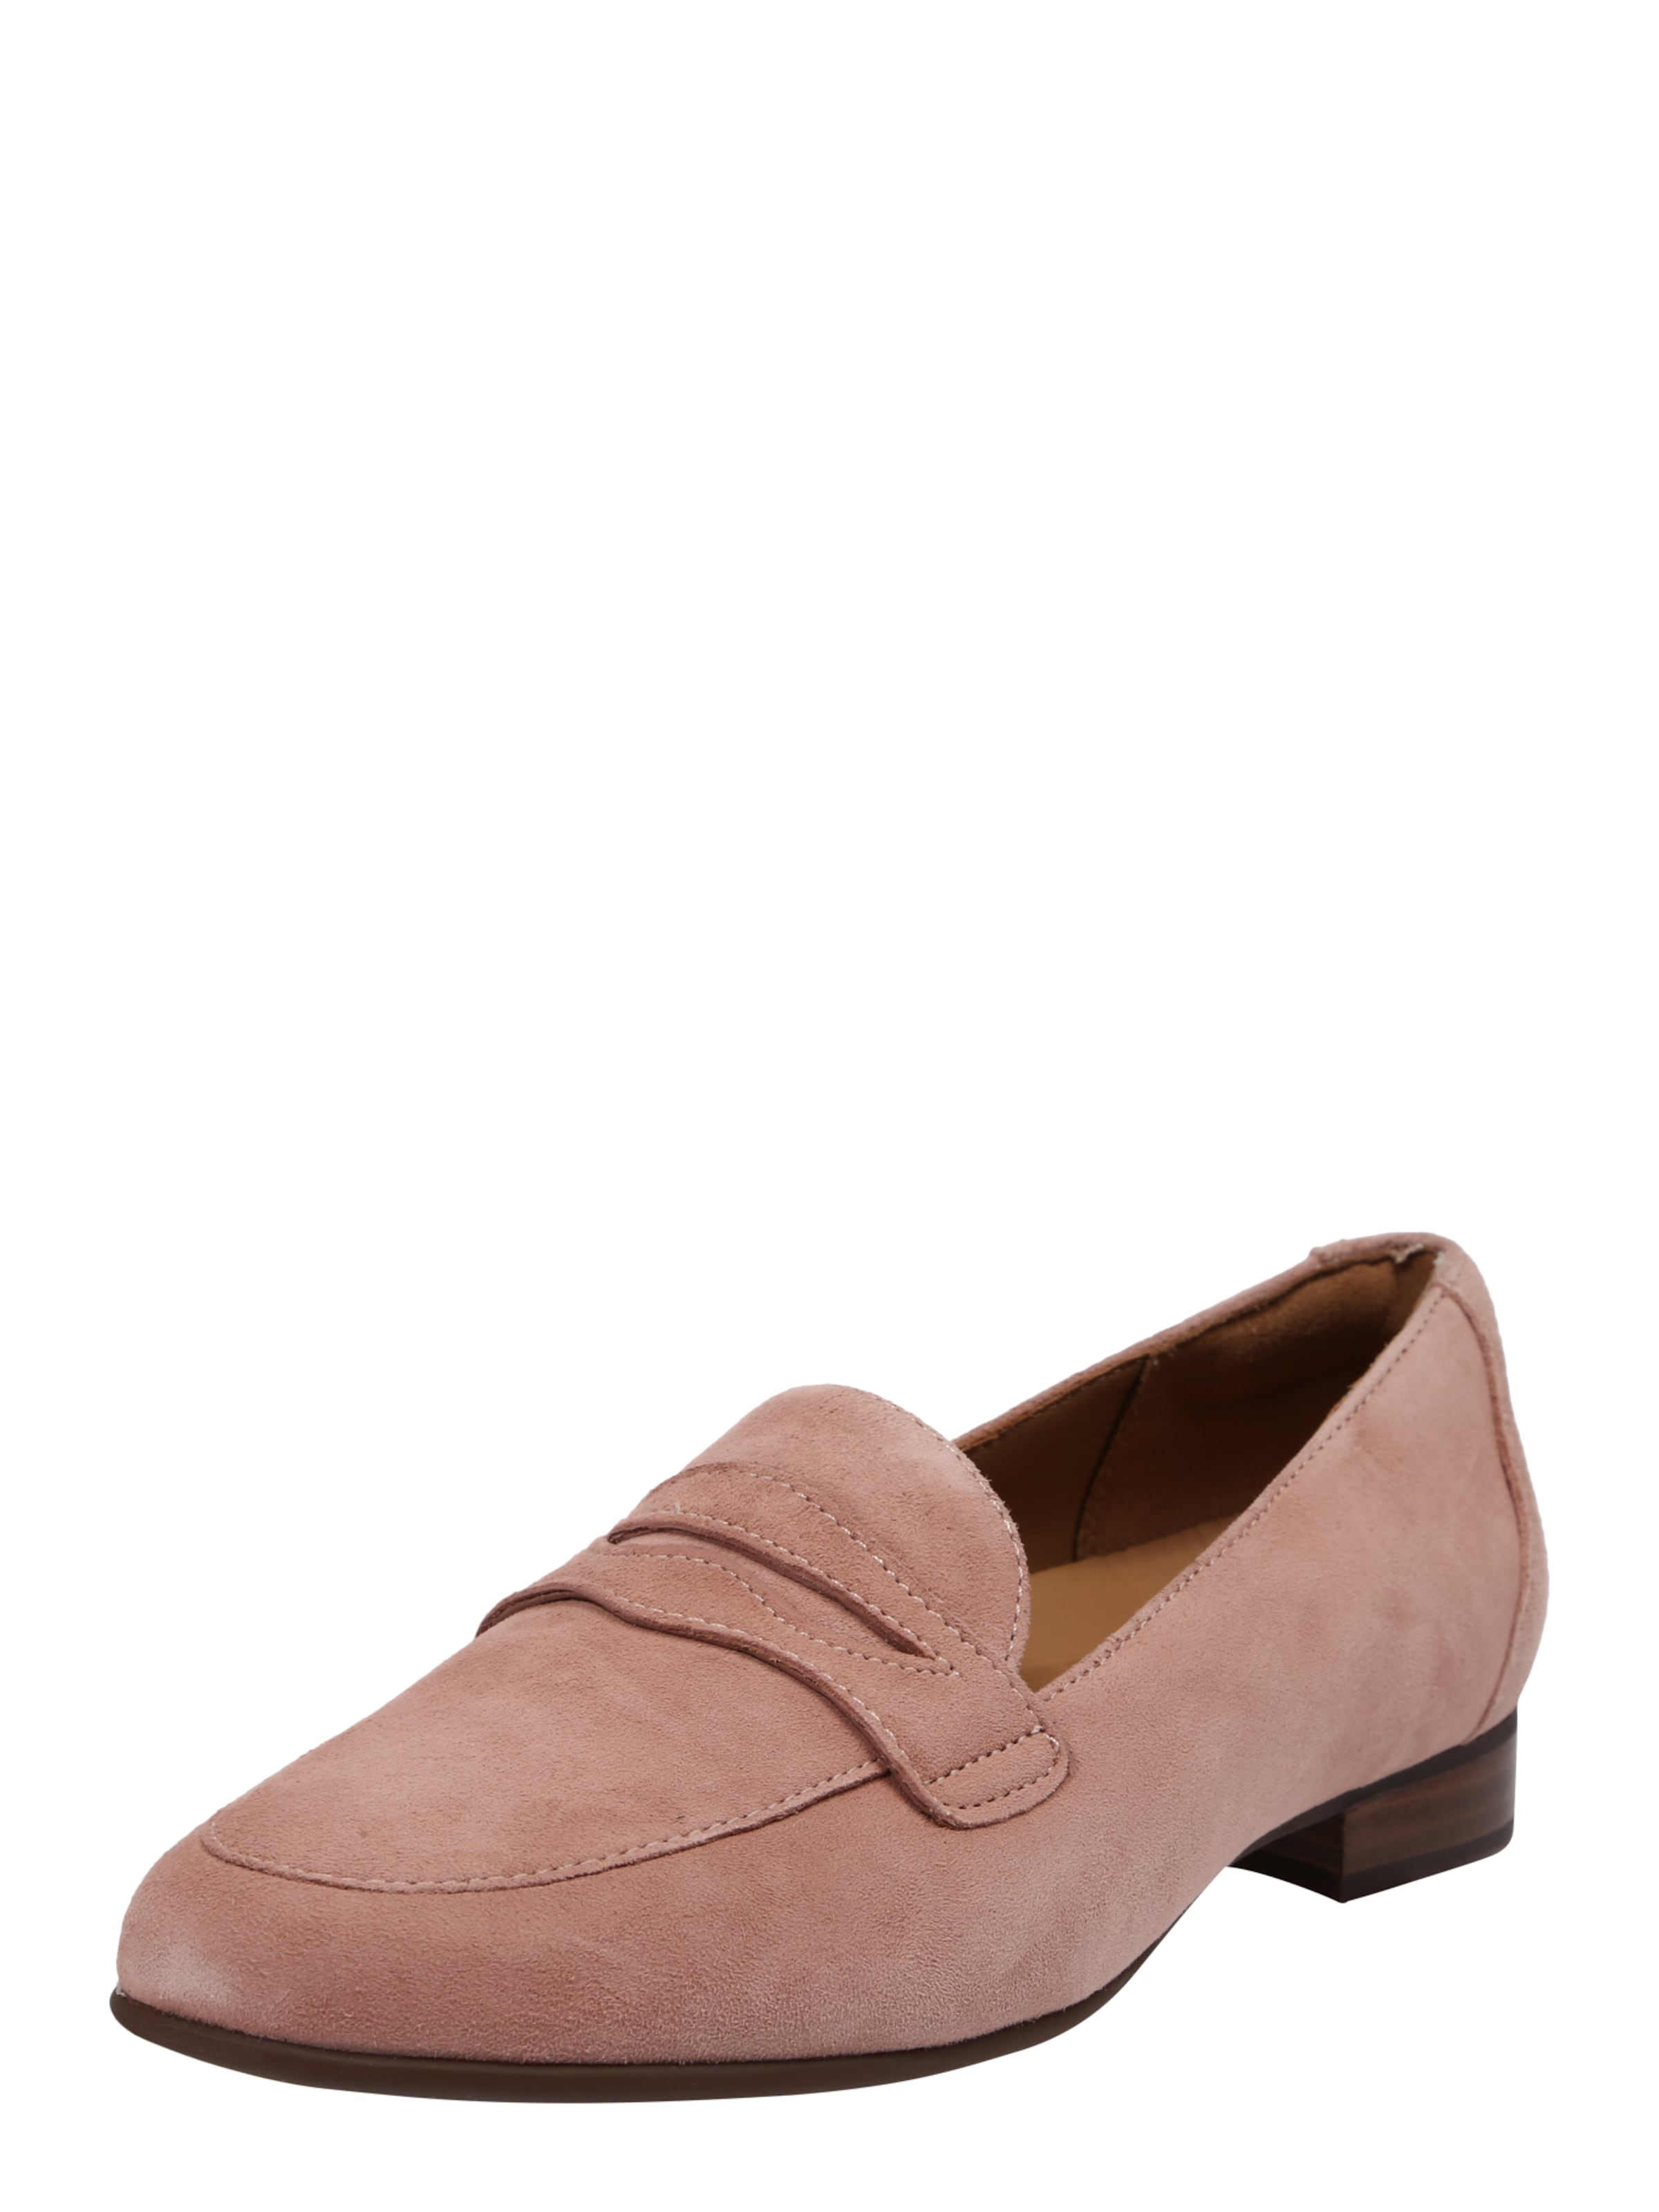 Loafers 'un Schwarz Blush Clarks In Go' BxerdoC